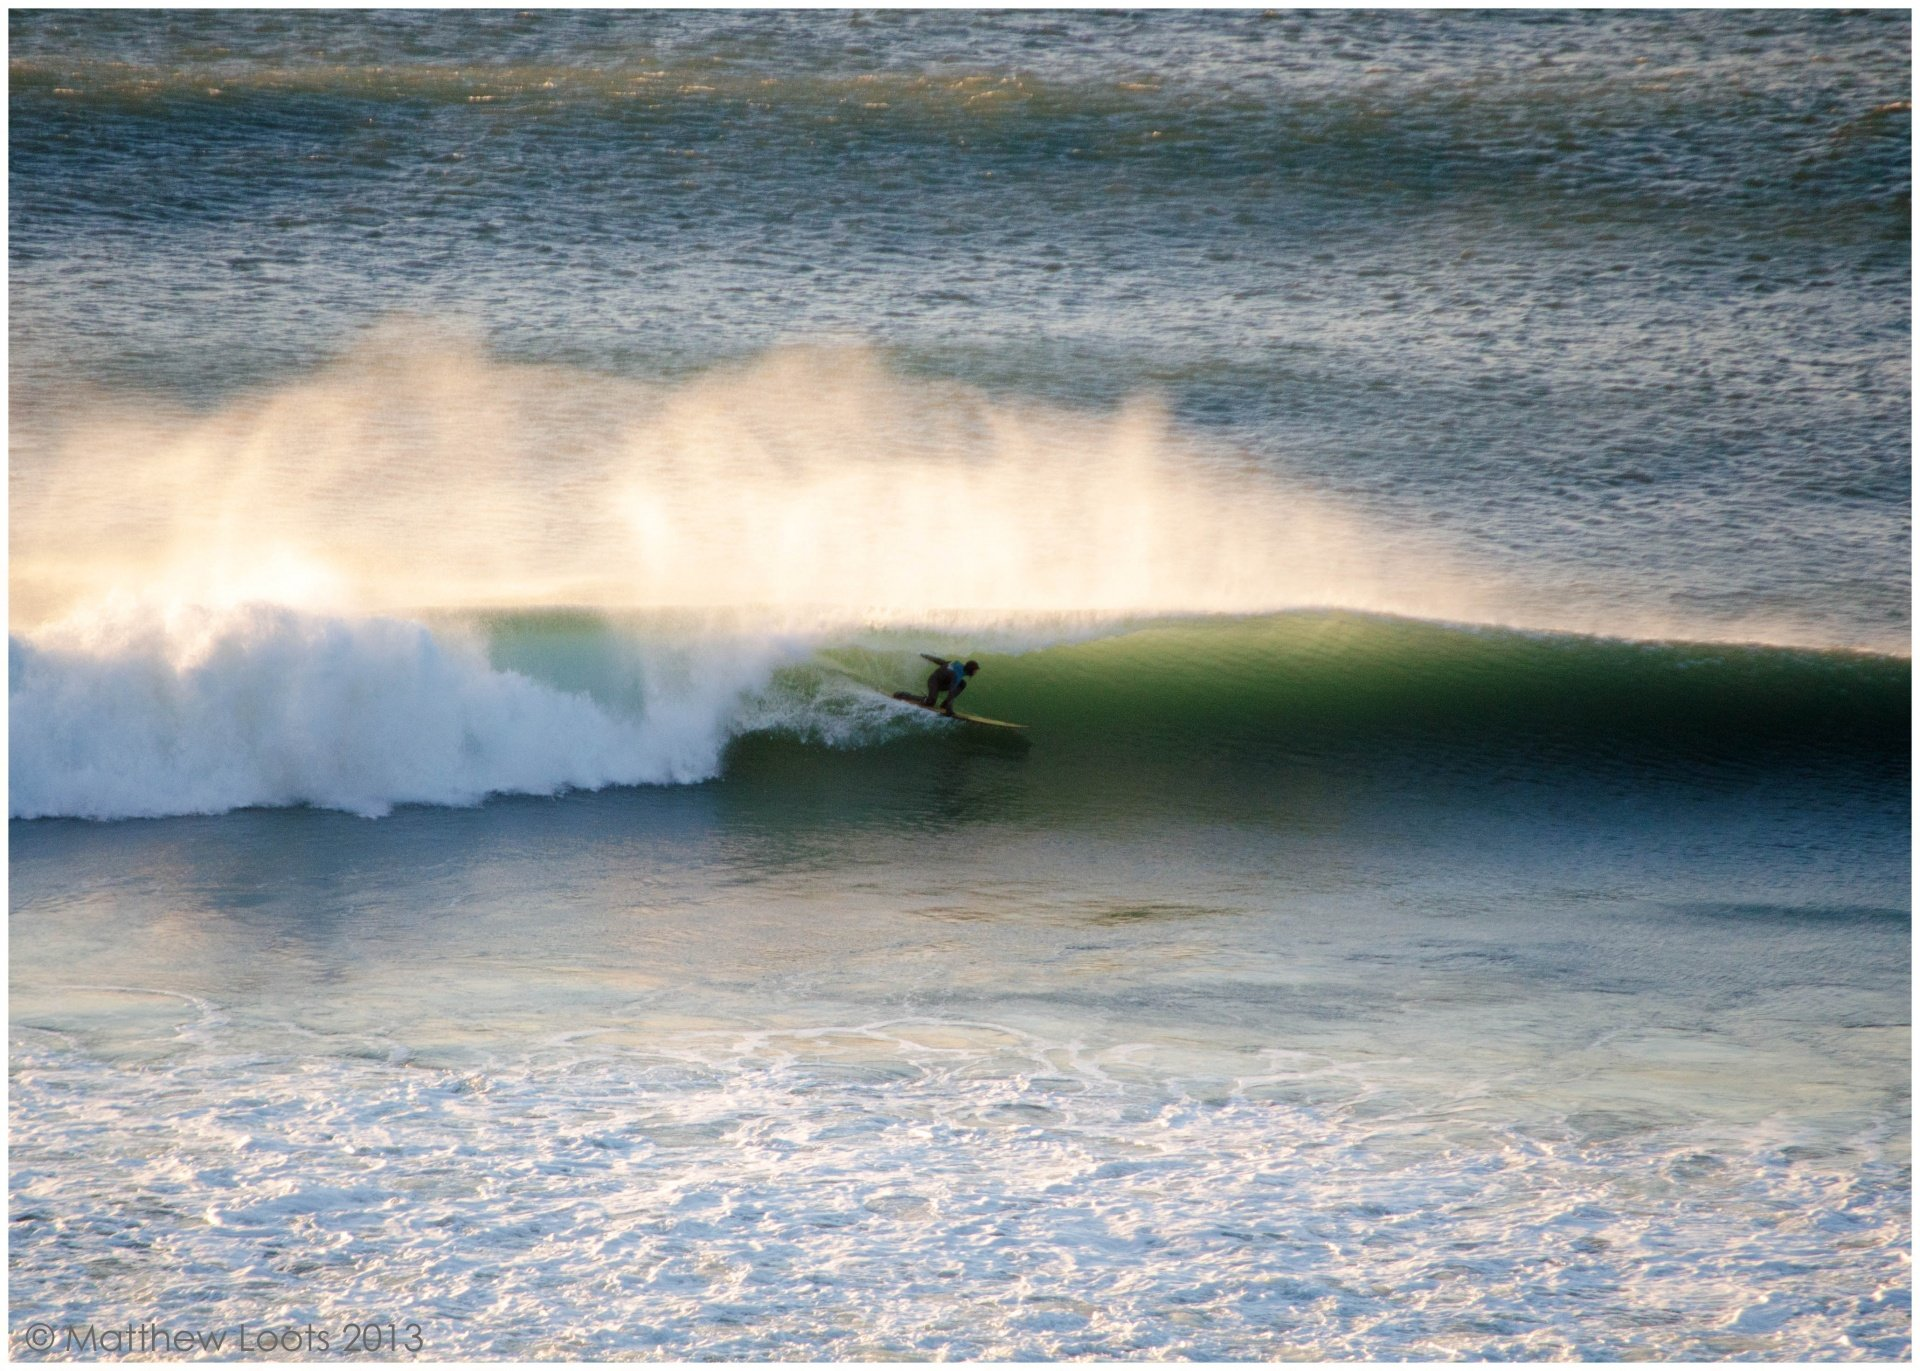 Matthew Loots's photo of Porthtowan